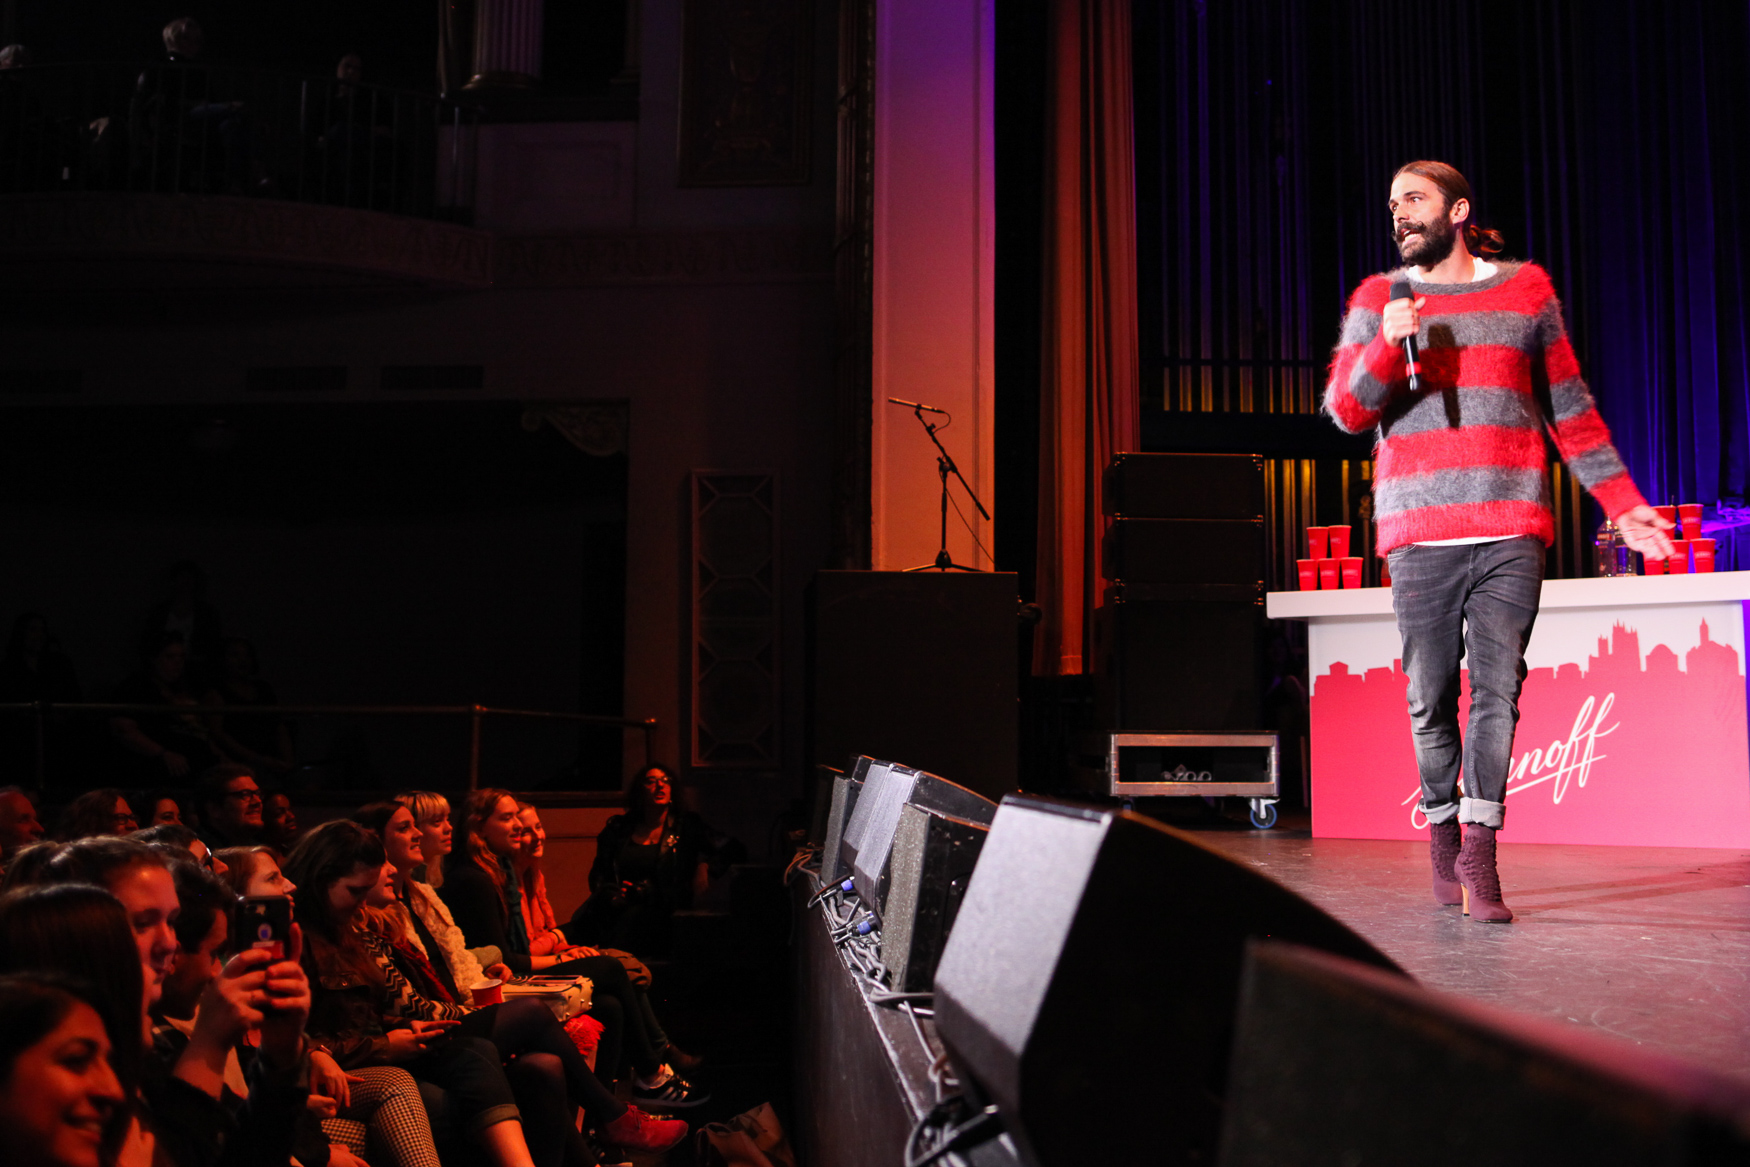 Jonathan Van Ness, the star of Netflix's hit show 'Queer Eye' brought comedians to the stage of Lincoln Theater on Sunday, October 28 for the last day of the Bentzen Ball, a 3-day comedy festival in D.C. Jonathan, who also hosts a podcast and was a well-known hair stylist before 'Queer Eye', brought his trademark positivity, candor and flair to the stage, talking about his enthusiasm for women's gymnastics, body positivity and voting. (Amanda Andrade-Rhoades/DC Refined)